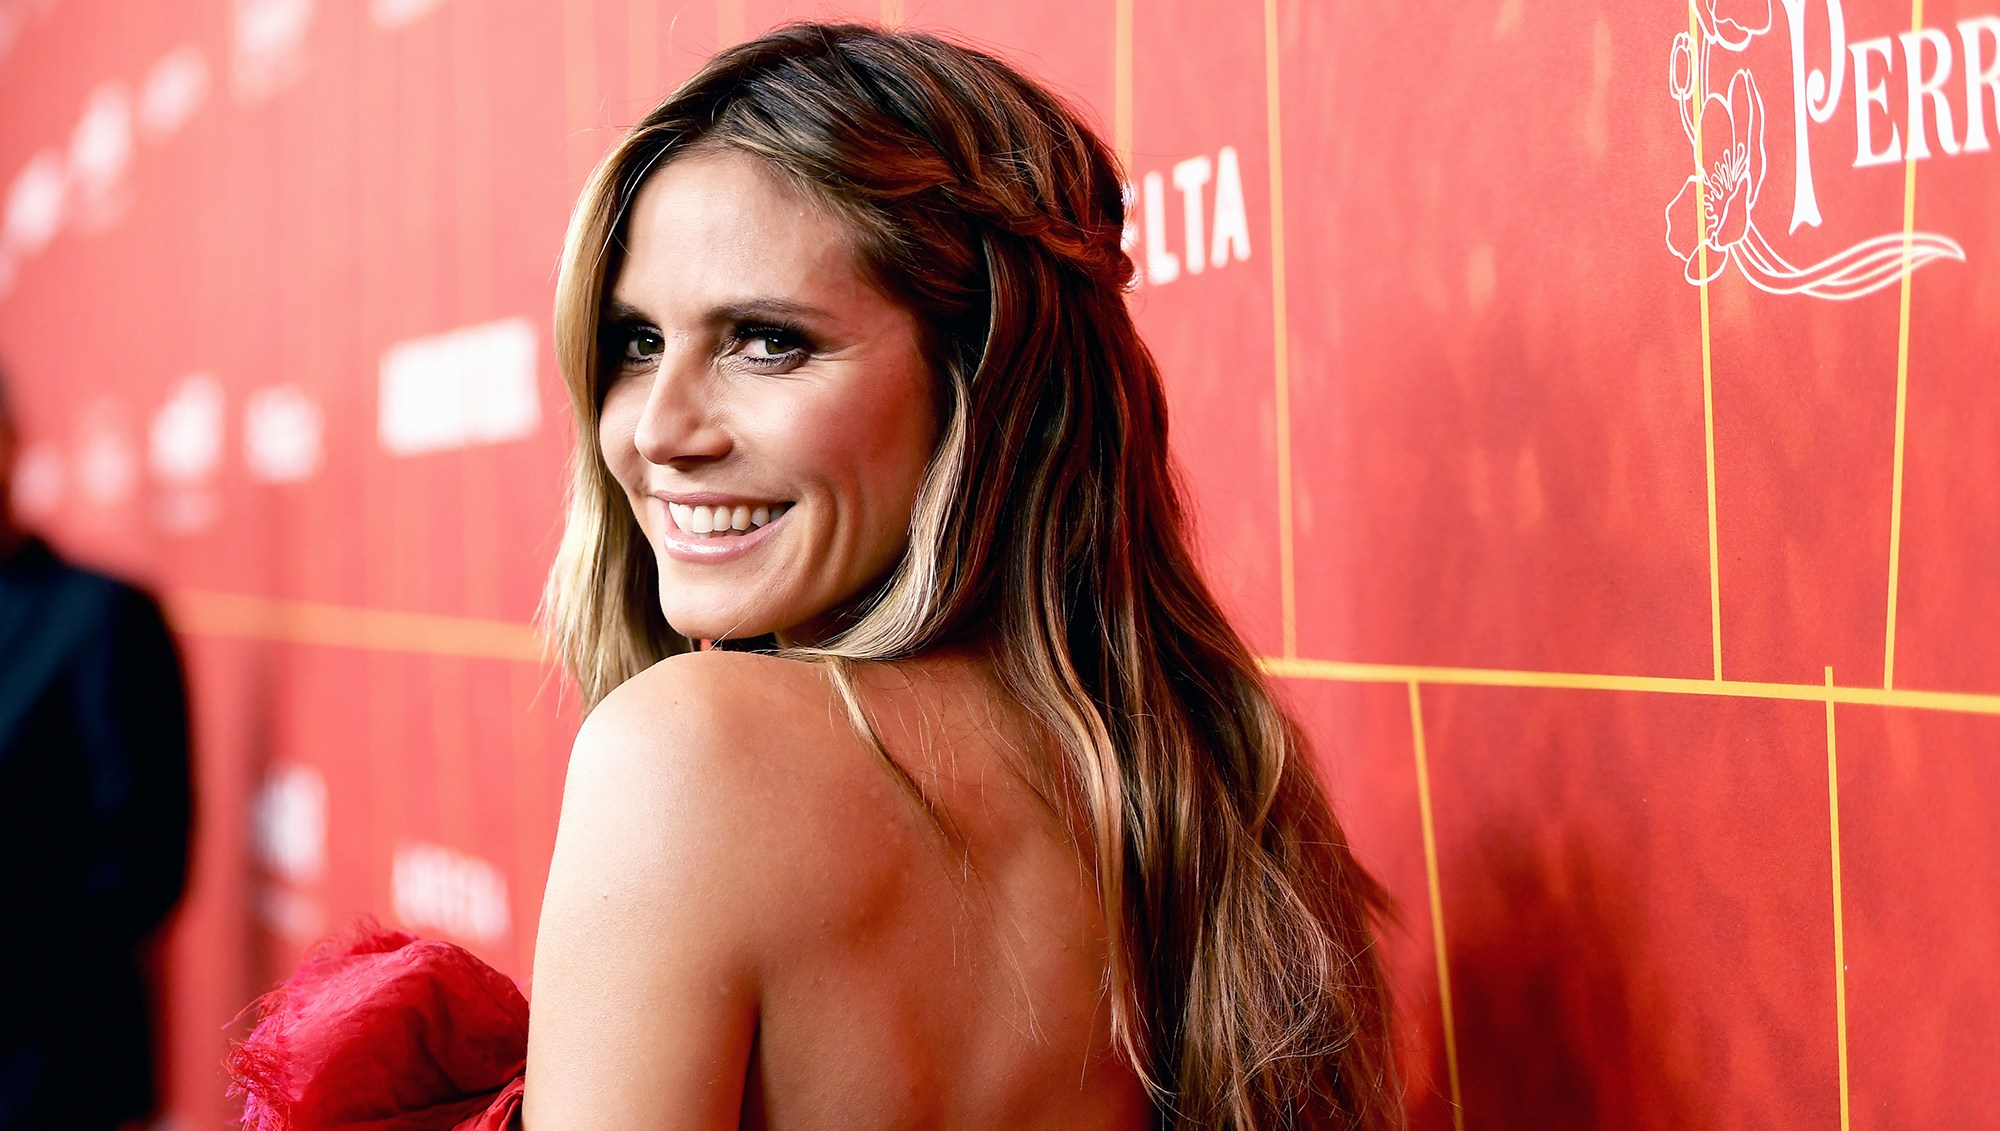 Heidi Klum Says 'Project Runway' Has 'Been Stale for 16 Years': 'It Needed Some Changes'